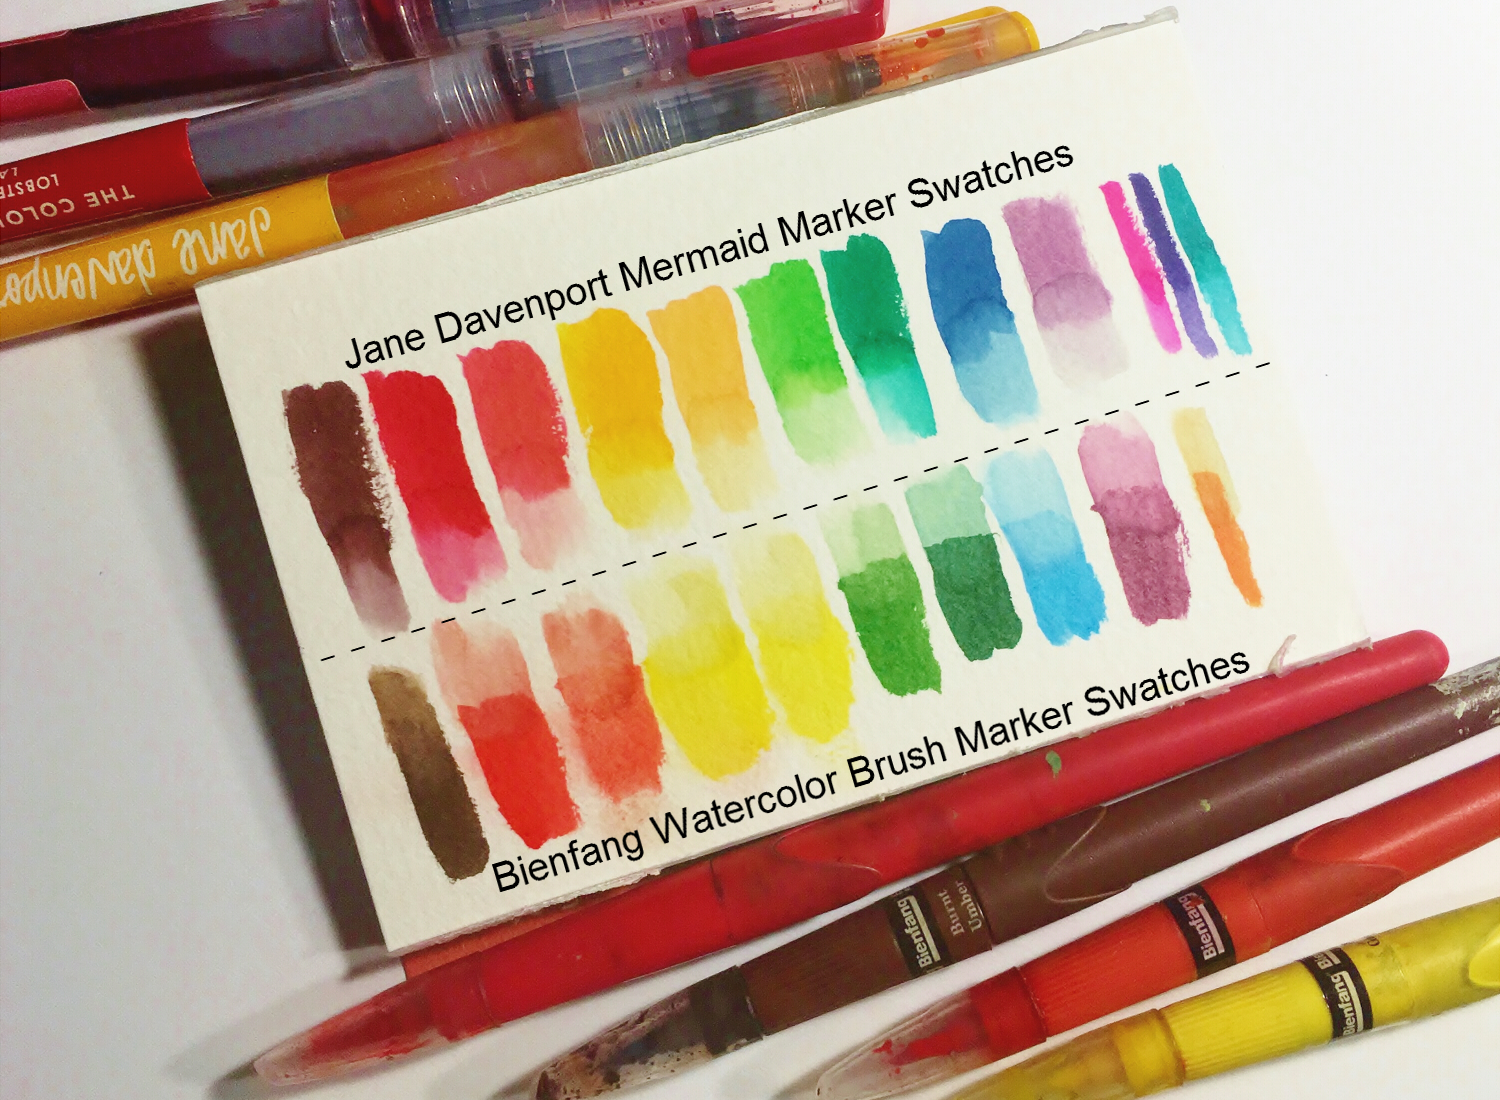 mermaid-marker-review-emk-wright-wwwdotmadebyemkdotcom-no-affiliation-with-jane-davenport-or-mermaid-marker-related-products-51.jpeg